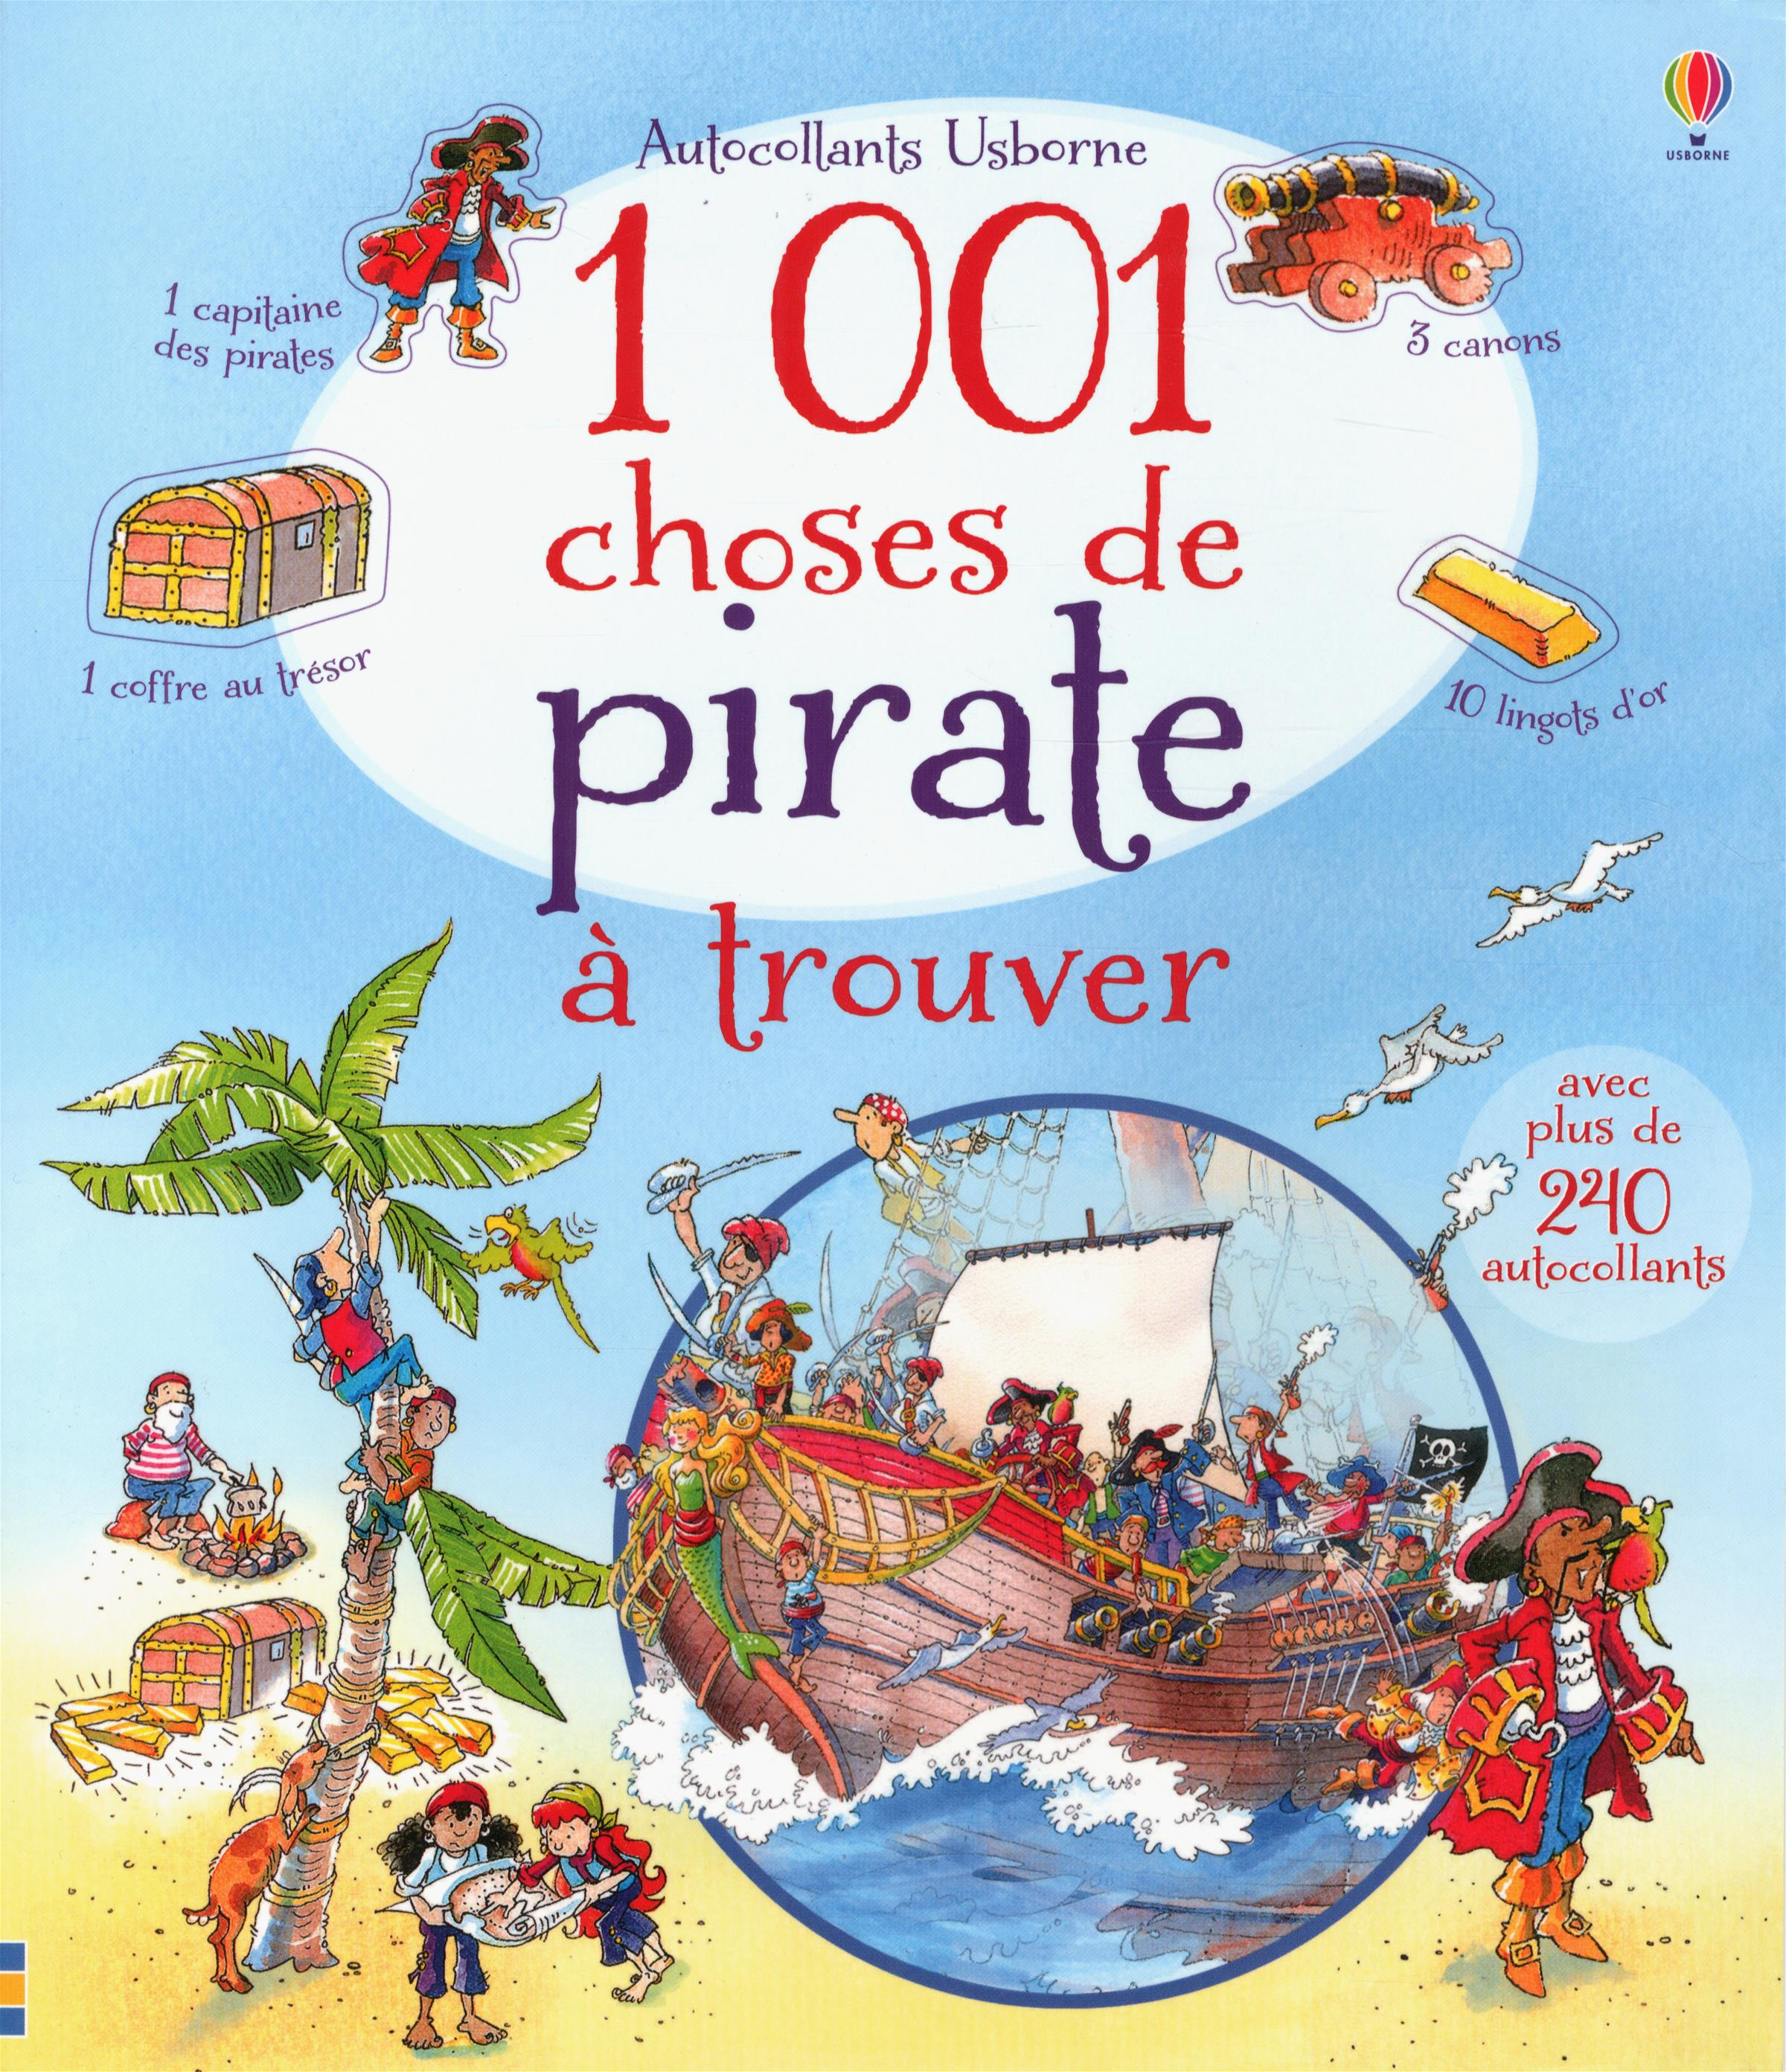 Agrandir · 4 de couverture. 9781409580881. Editeur : Usborne; Collection : Autocollants  Usborne ...